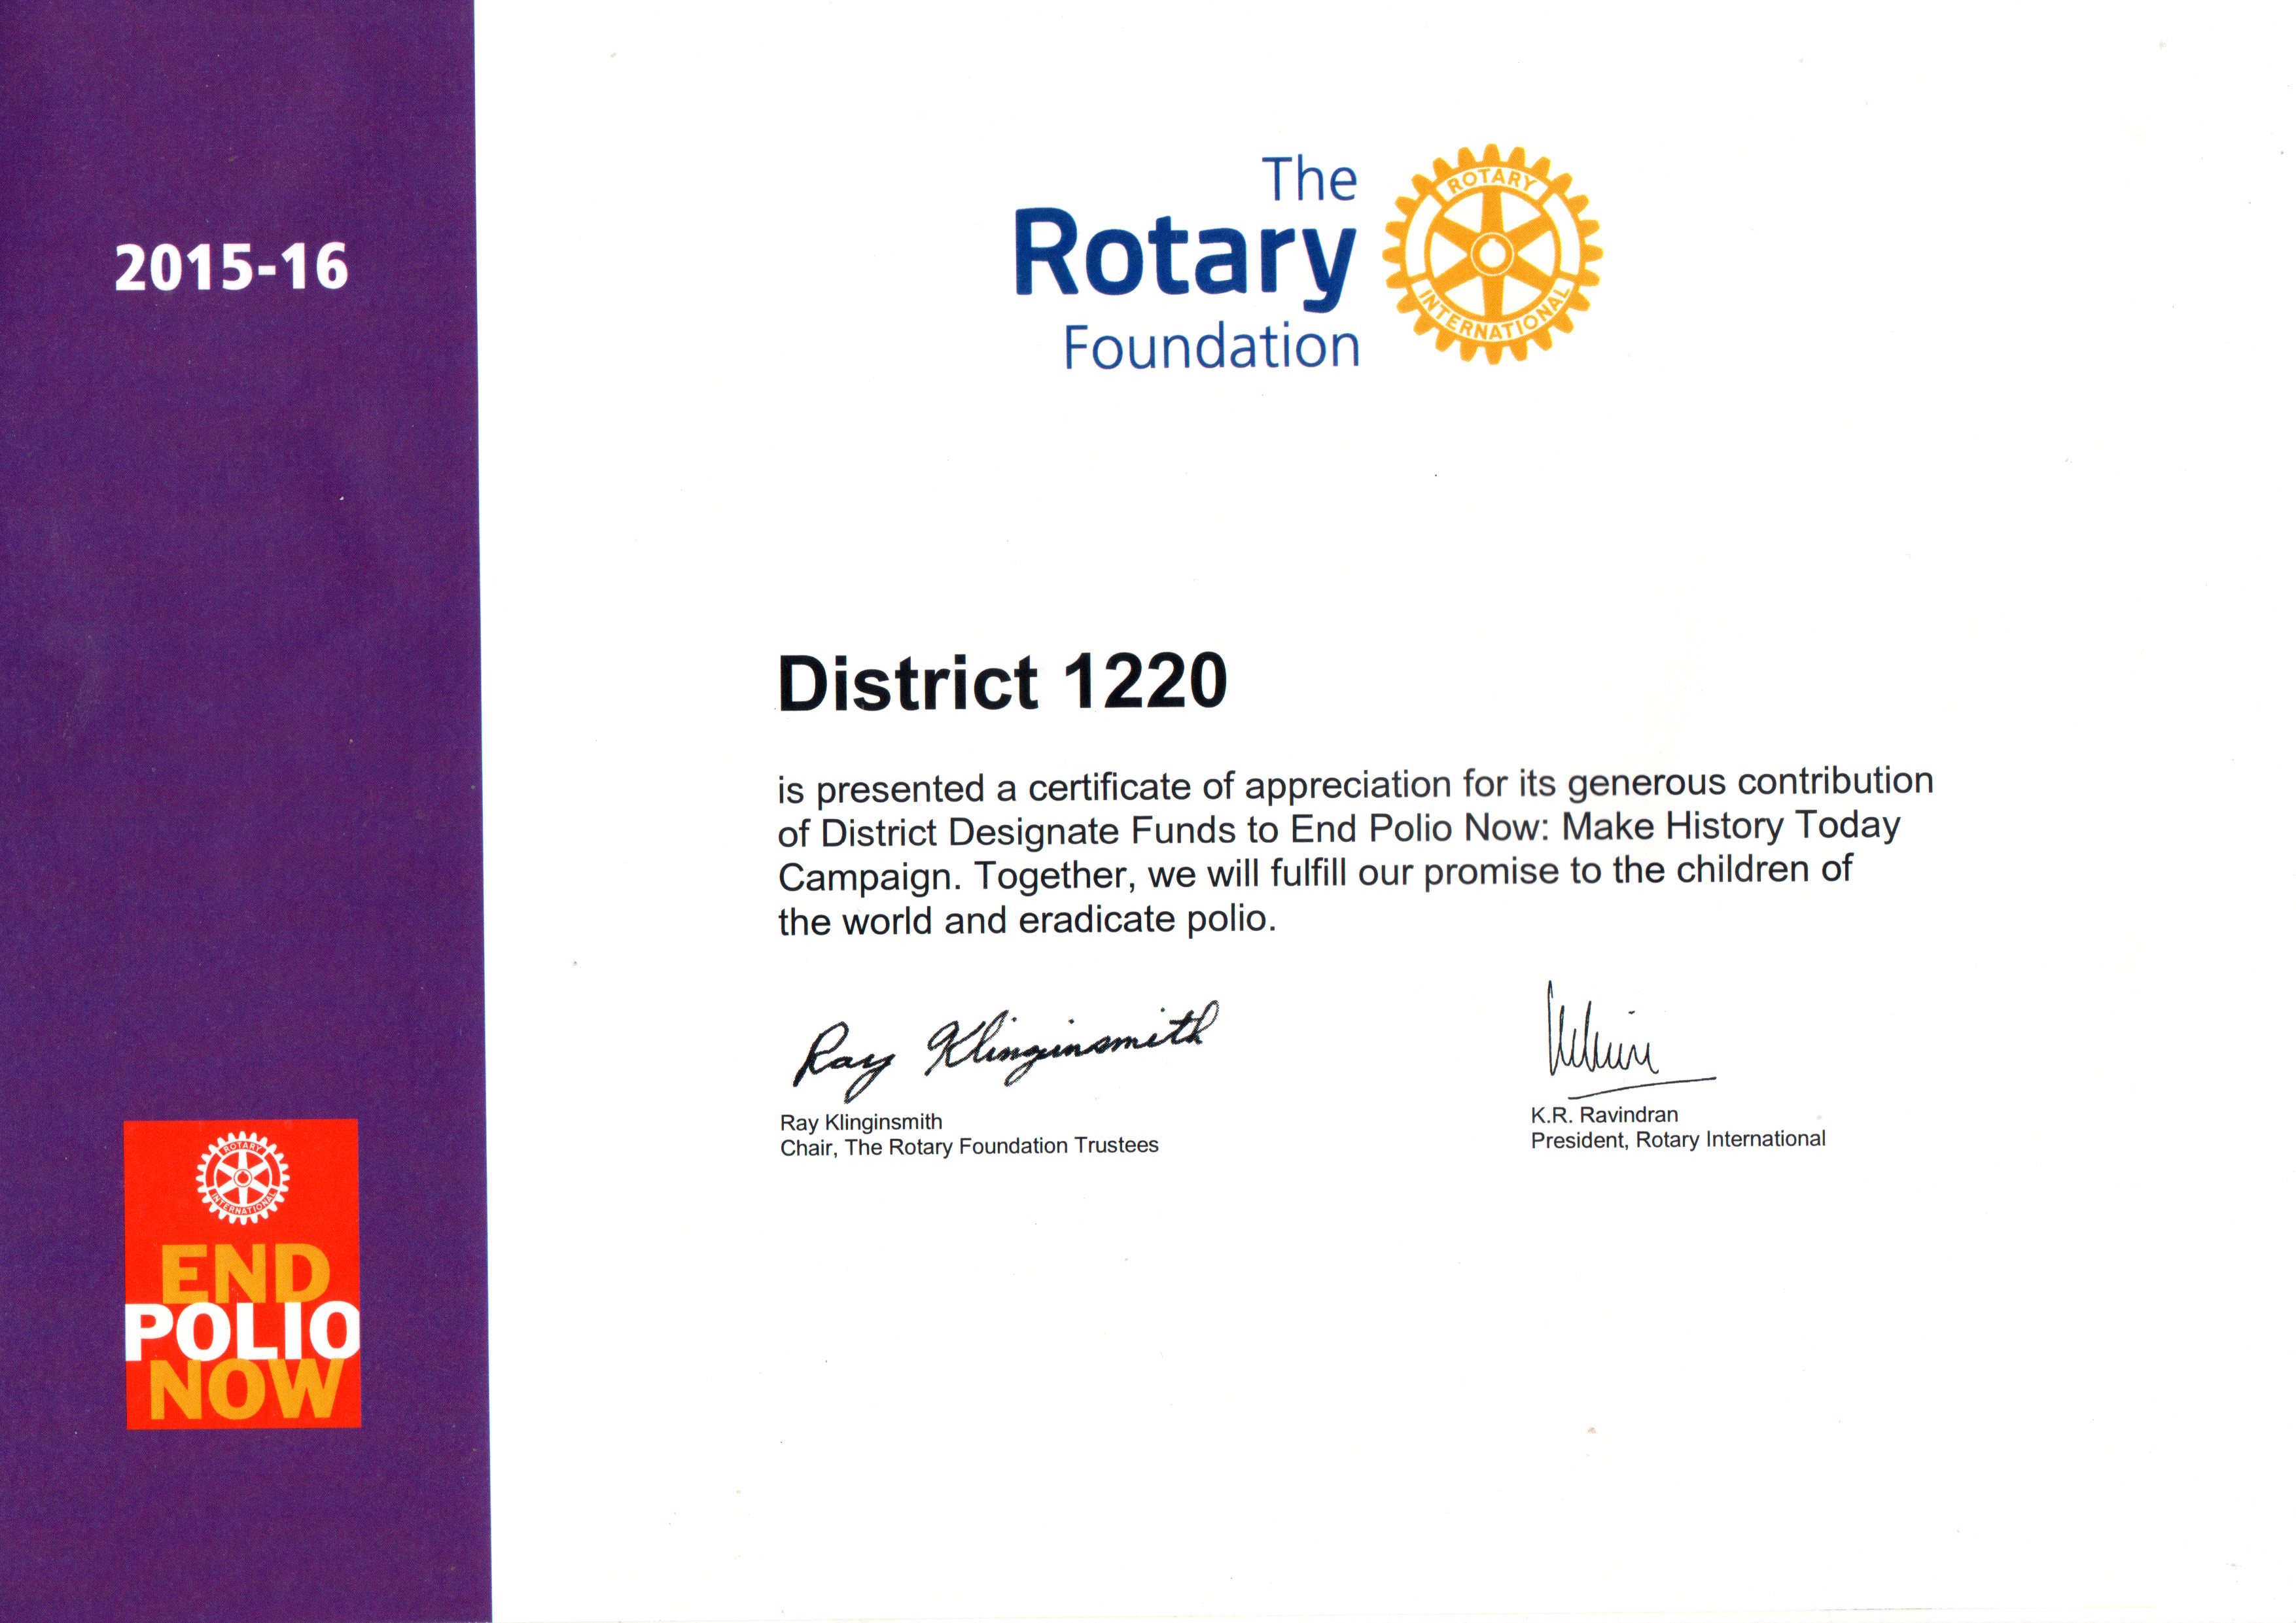 Foundation rotary district 1220 certificate of recognition for district 1220 foundation team alramifo Image collections